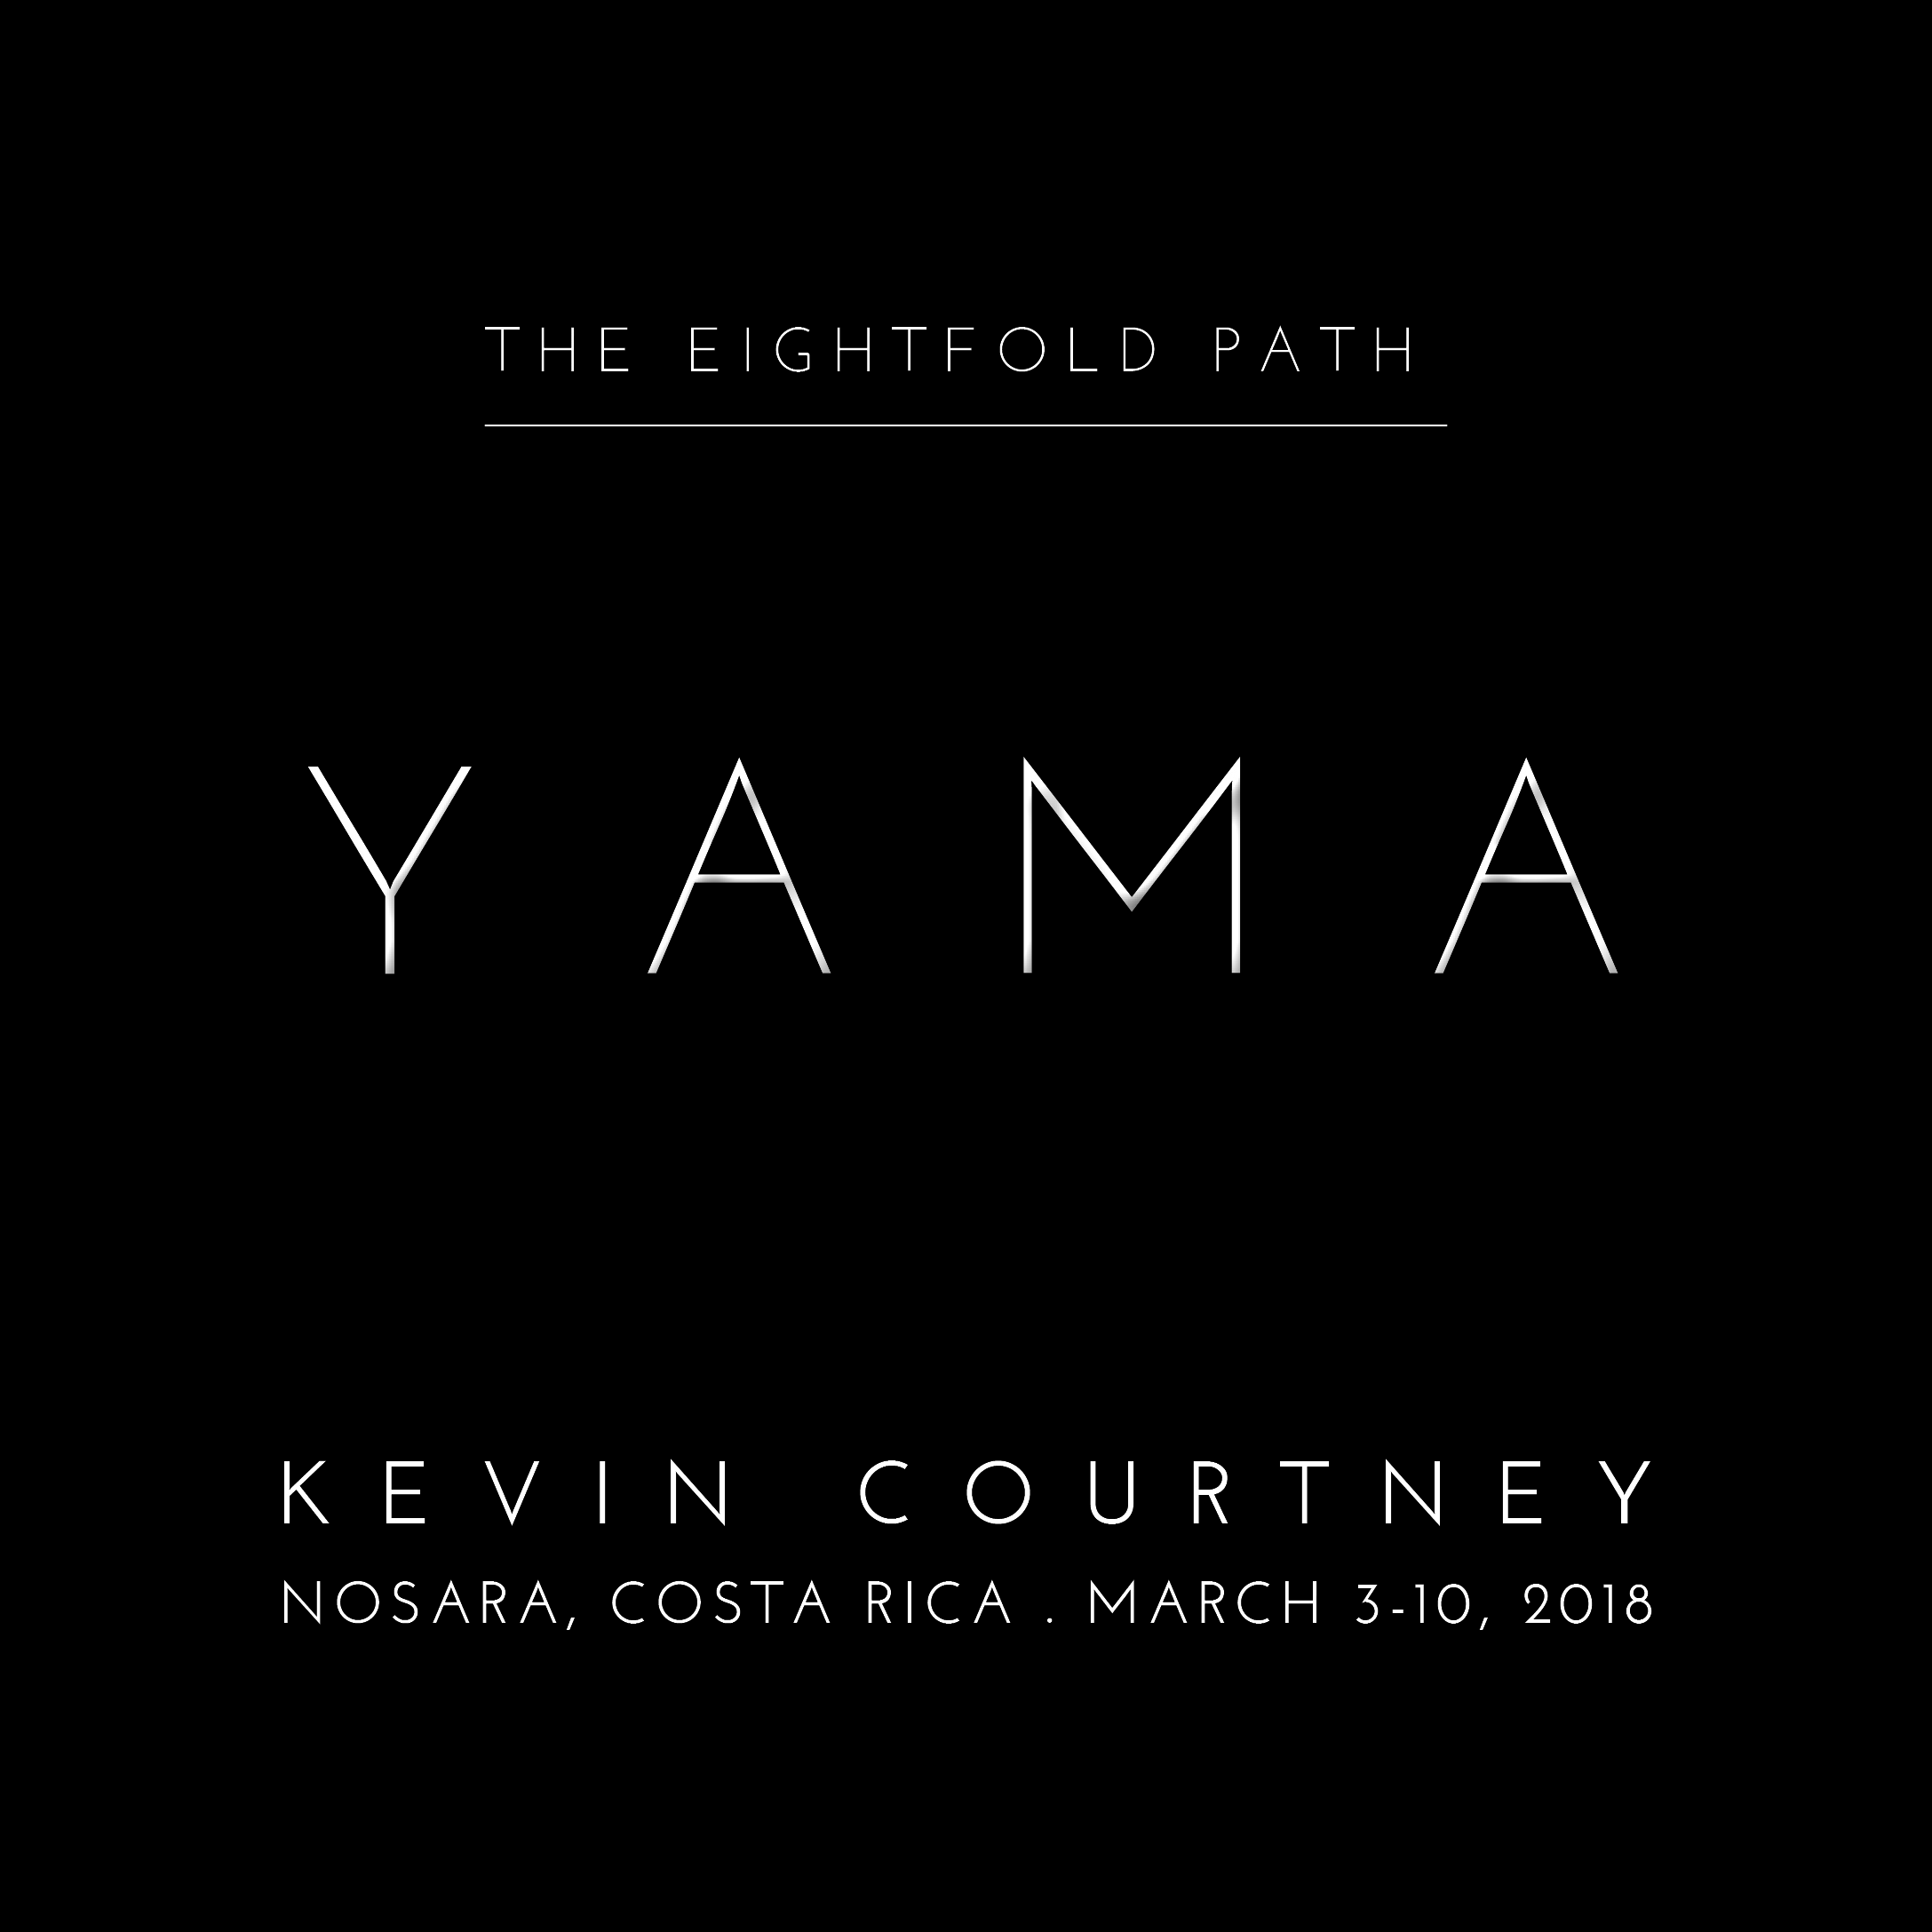 Yoga Retreats with Kevin Courtney | The Eightfold Path: YAMA in Nosara, Costa Rica, March 2018